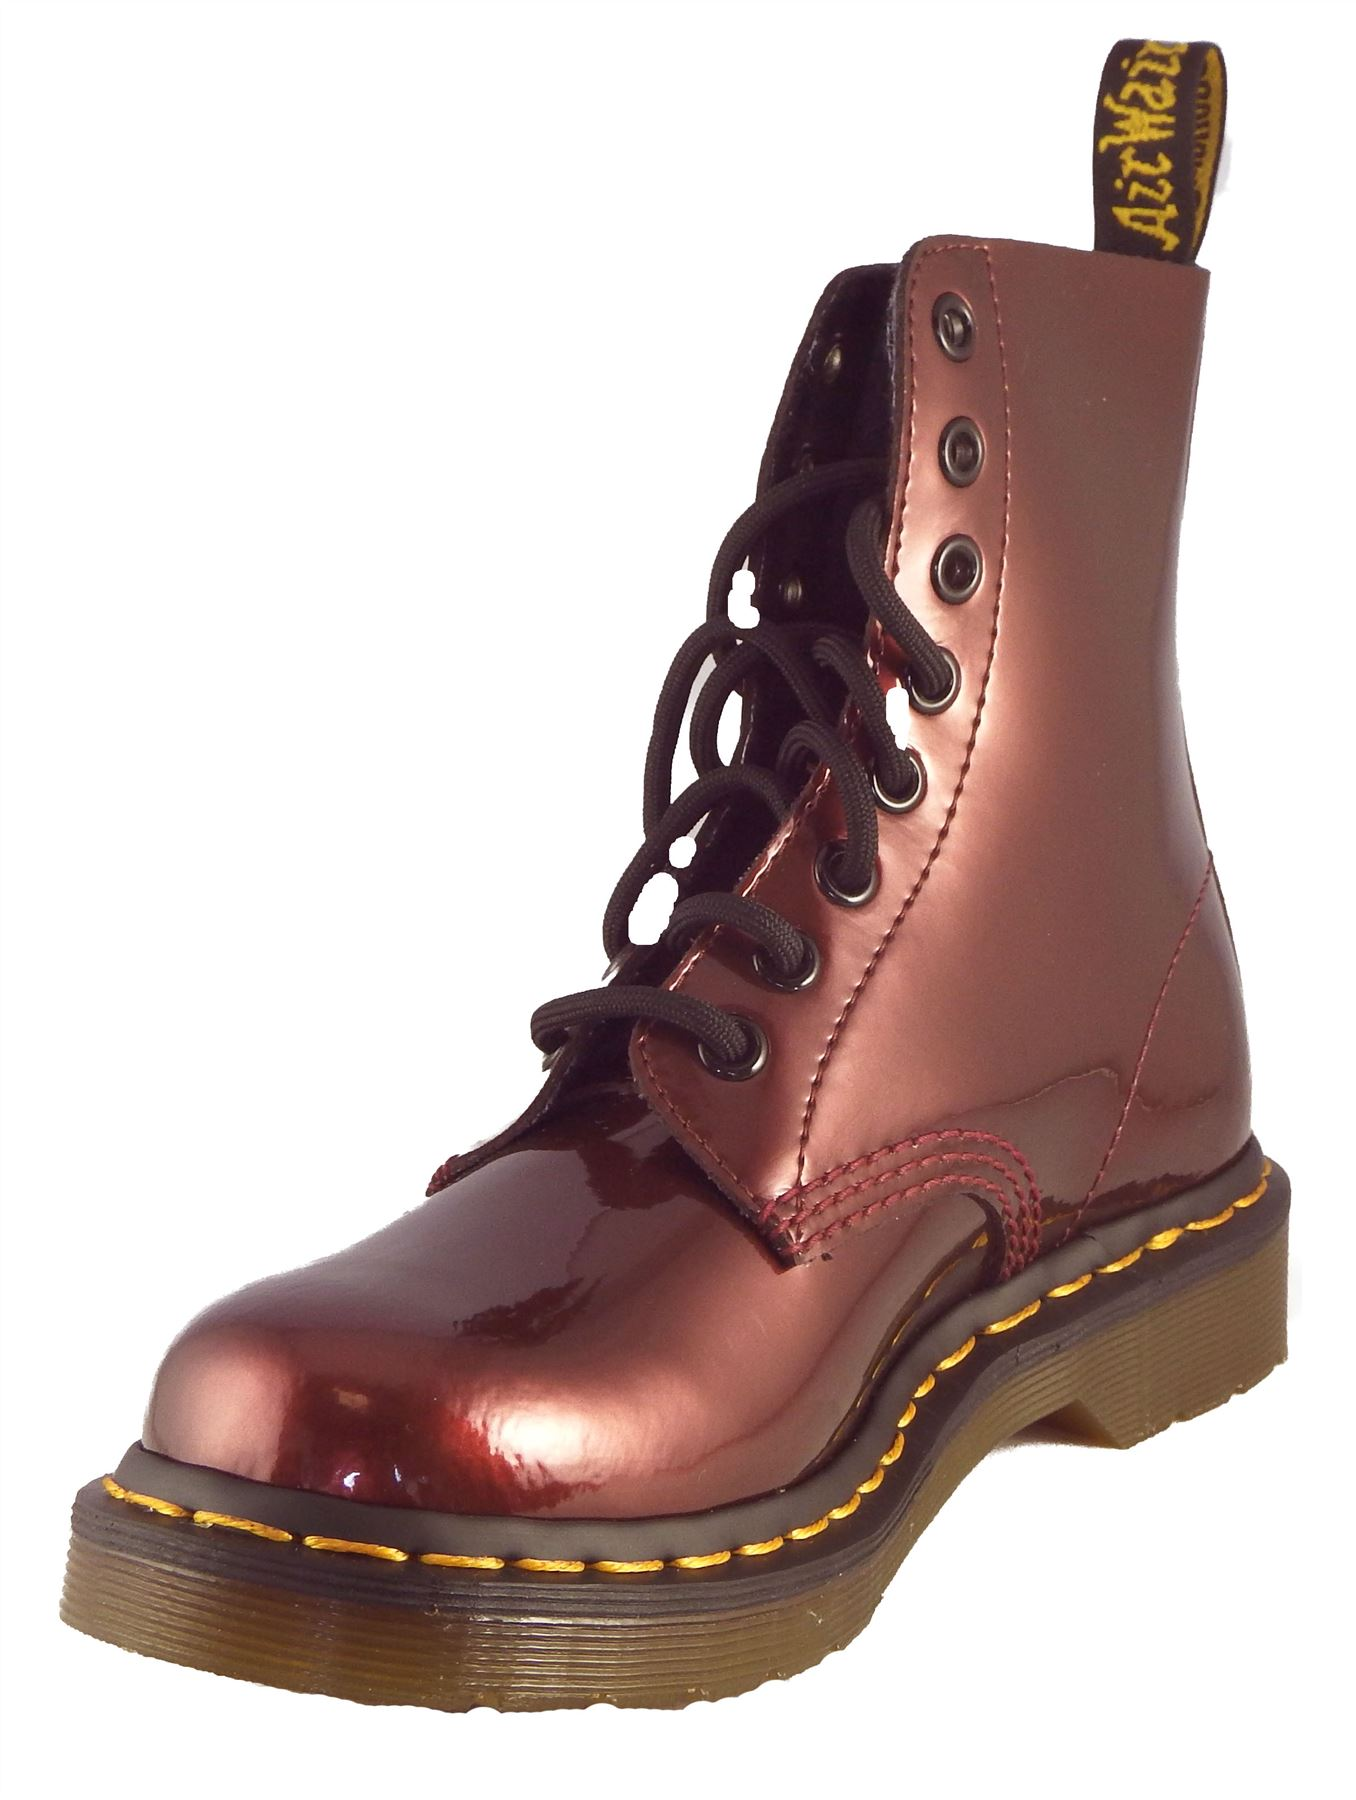 dr martens womens 1460 cherry red spectra patent leather. Black Bedroom Furniture Sets. Home Design Ideas